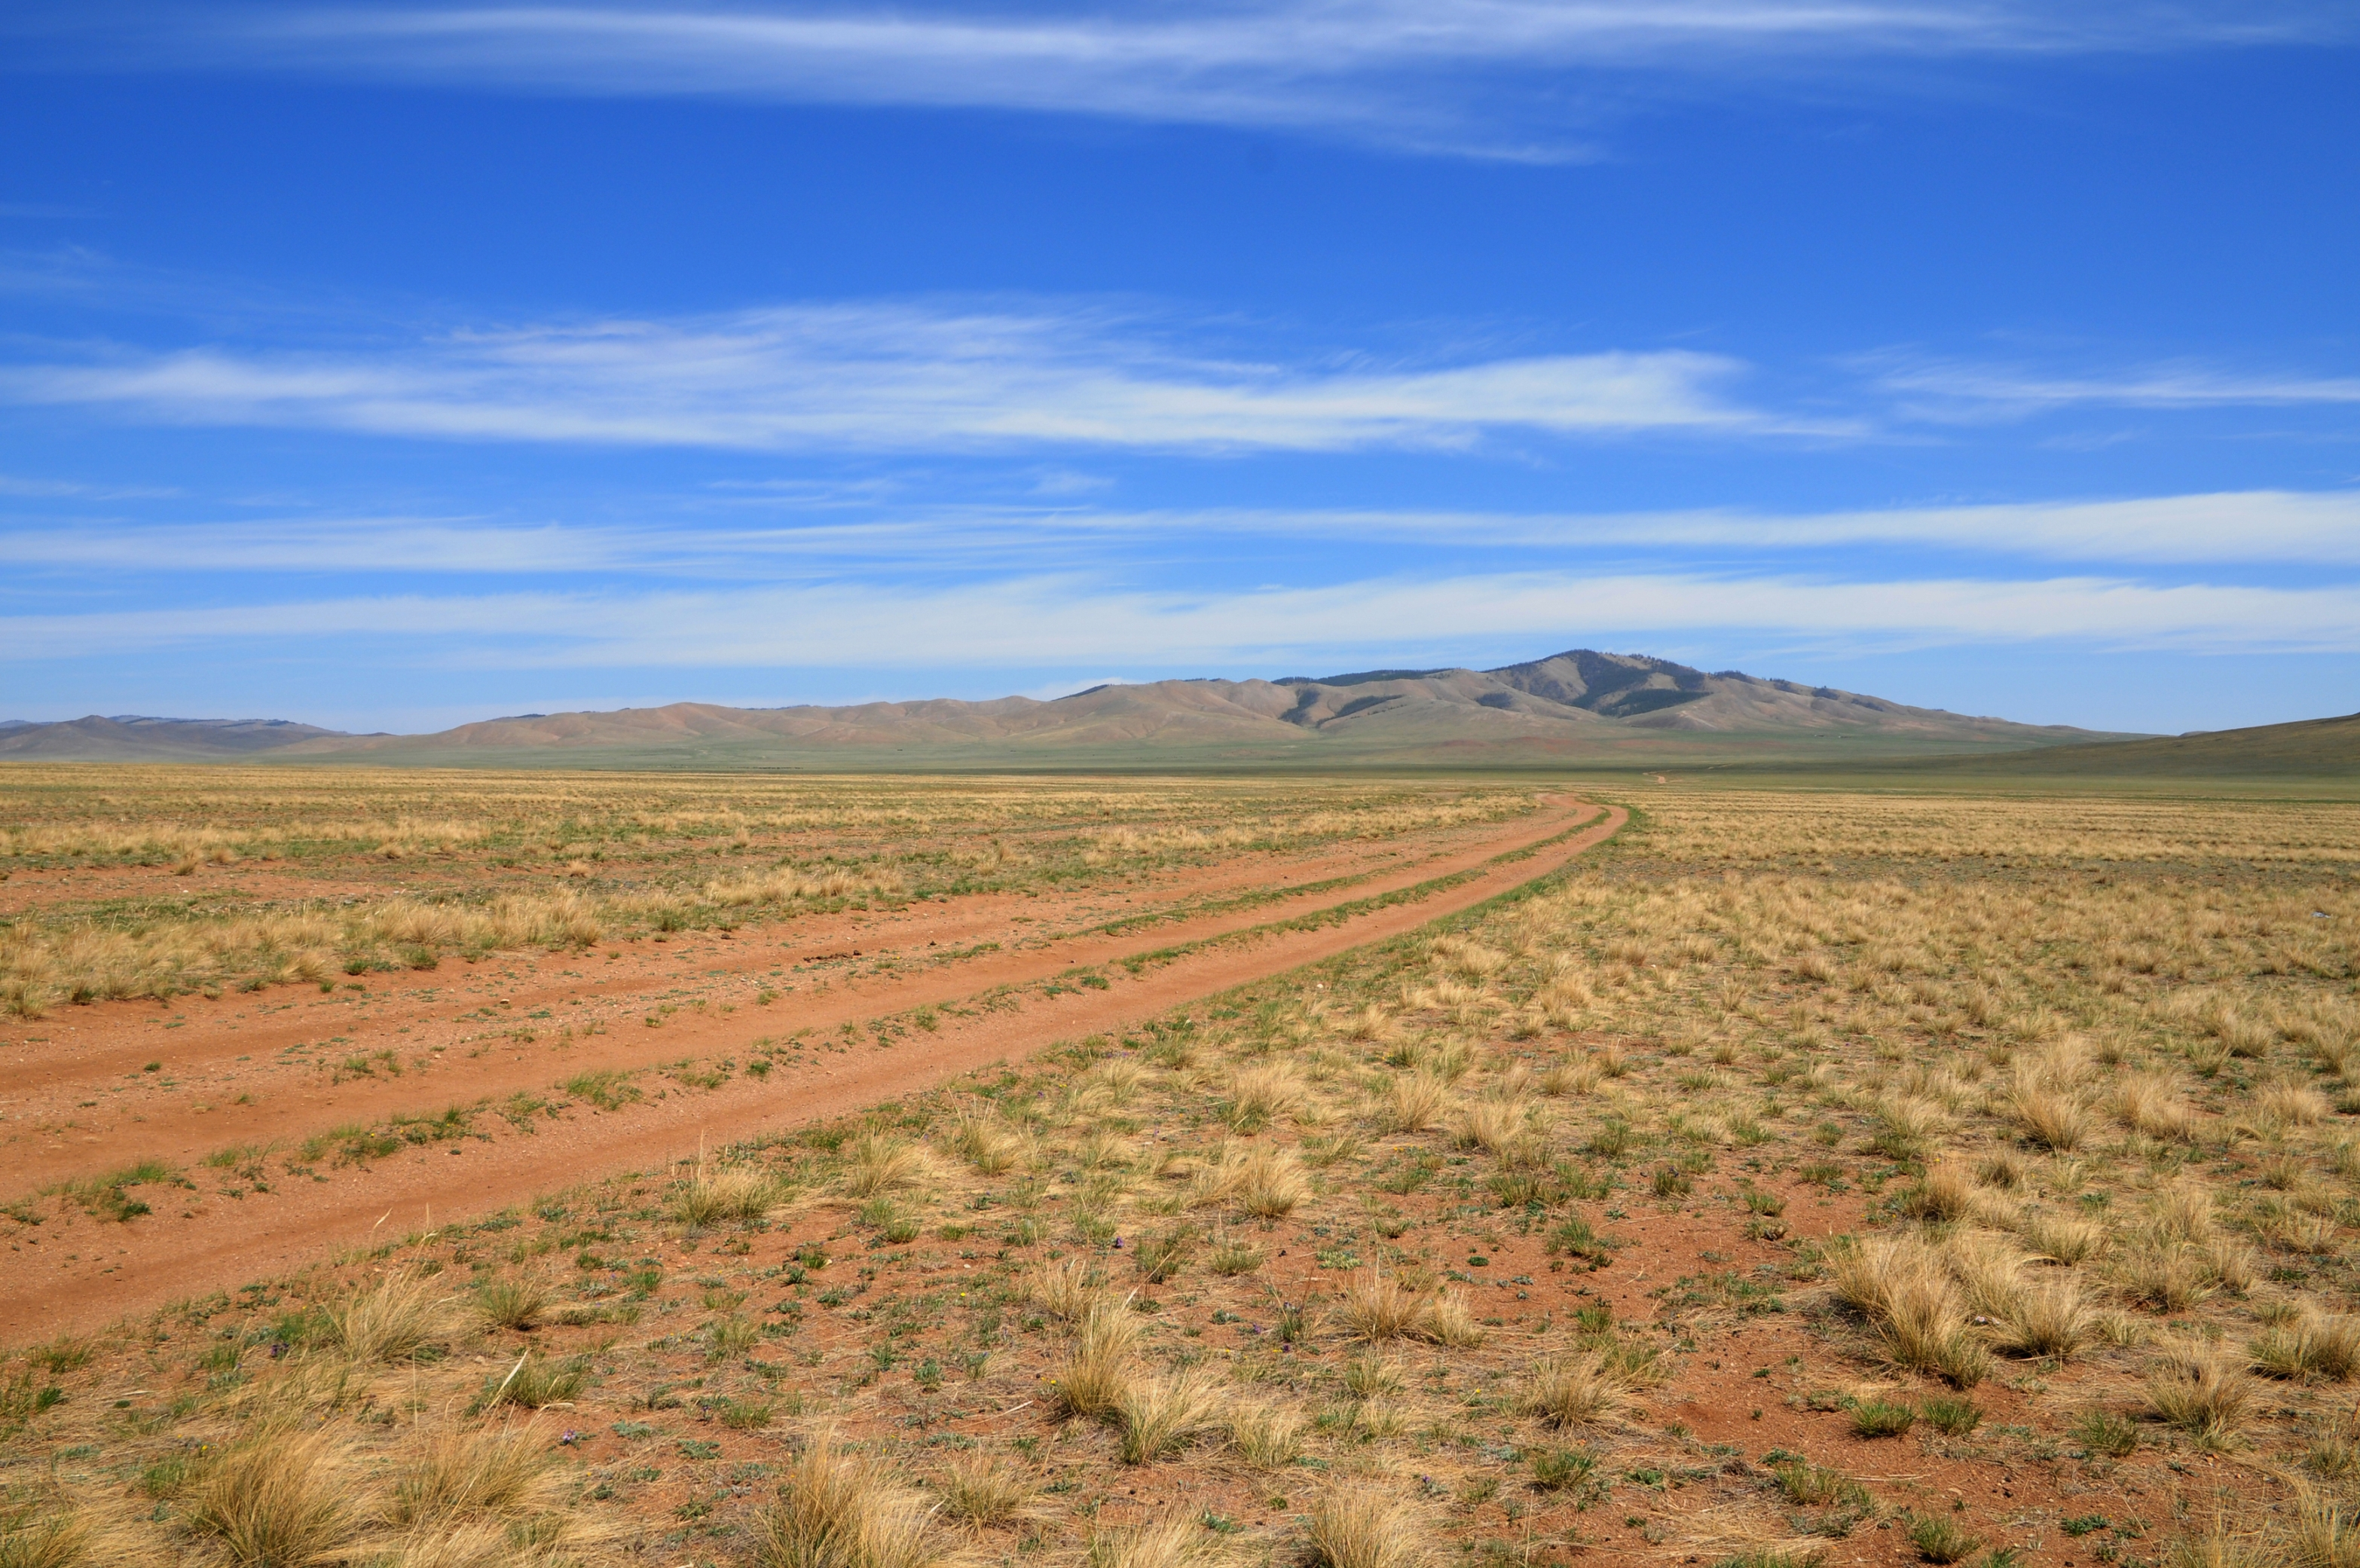 What plants grow in the steppe